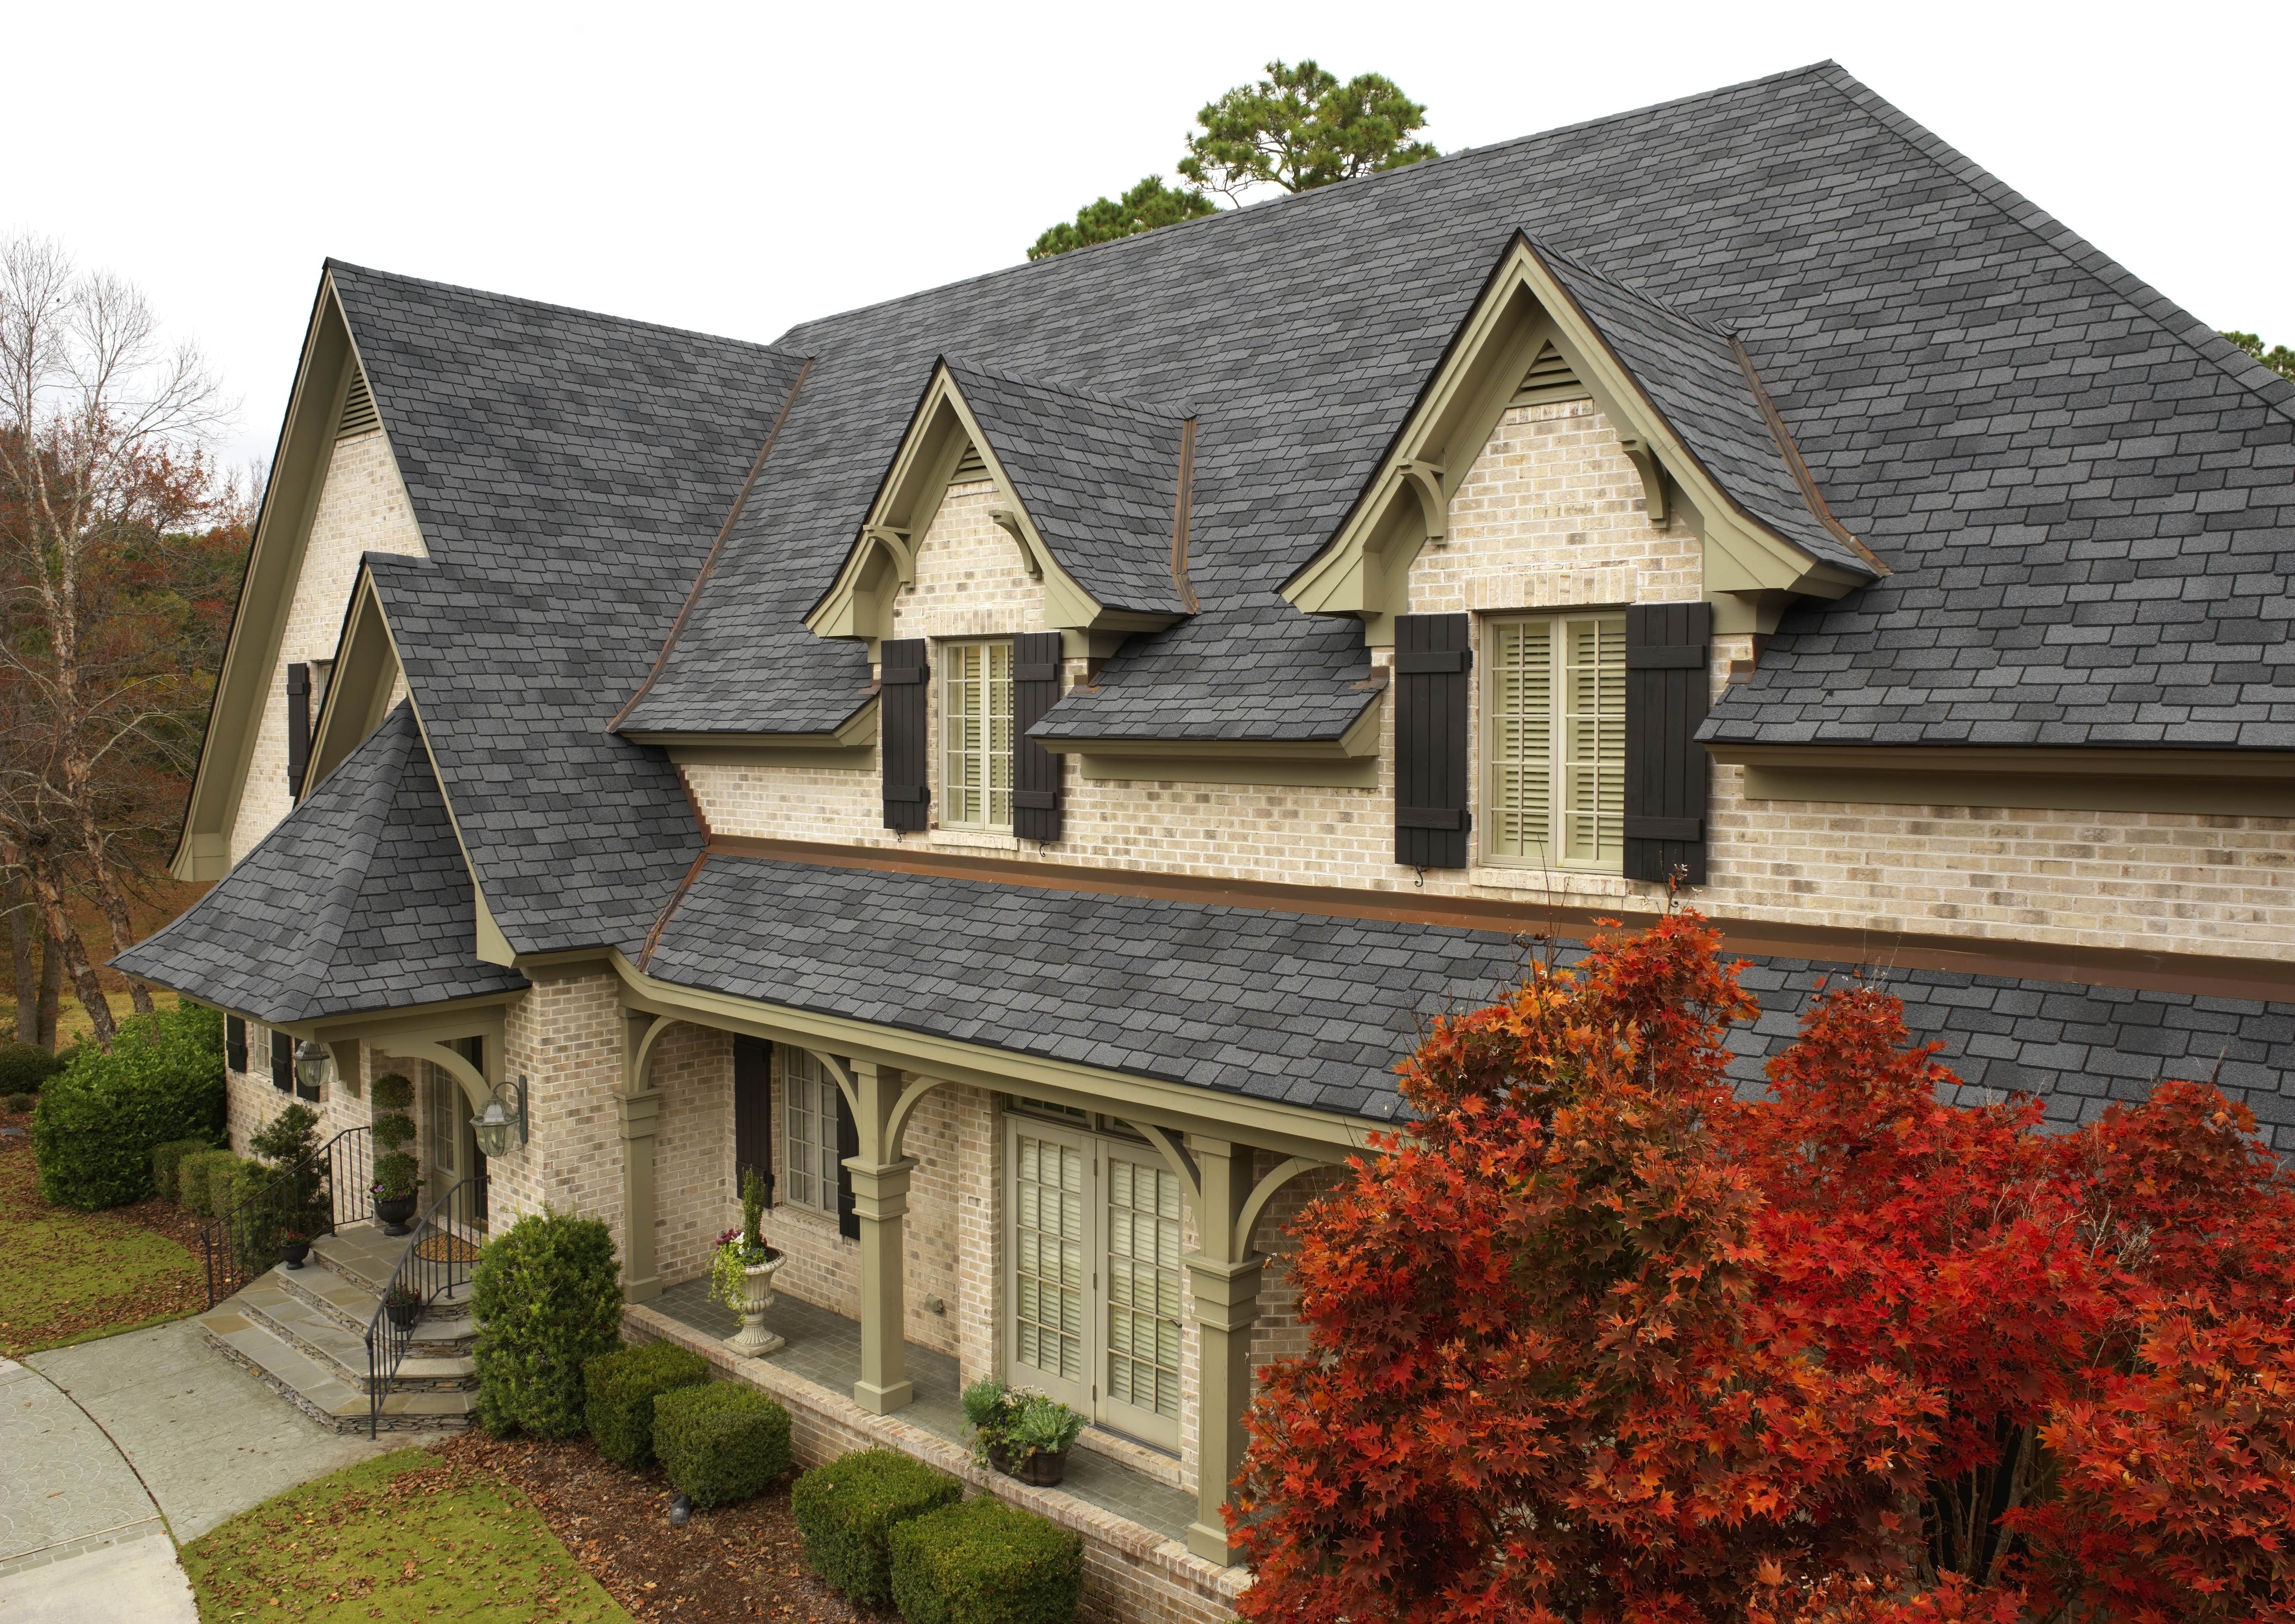 Photo of a home using GAF's Woodland Castelwood Gray shingles